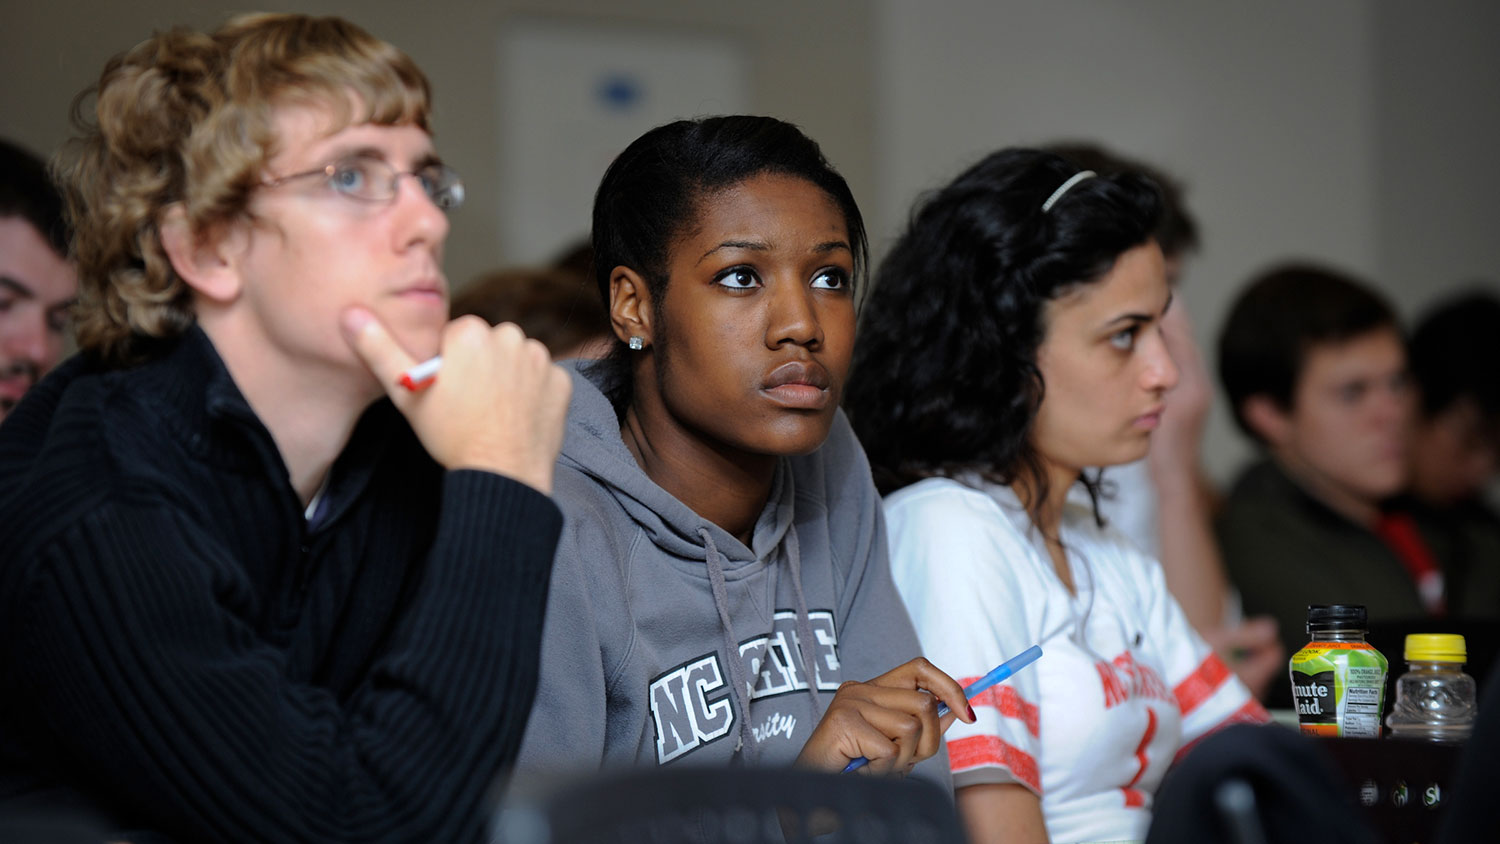 Biomedical engineering classroom with diverse students